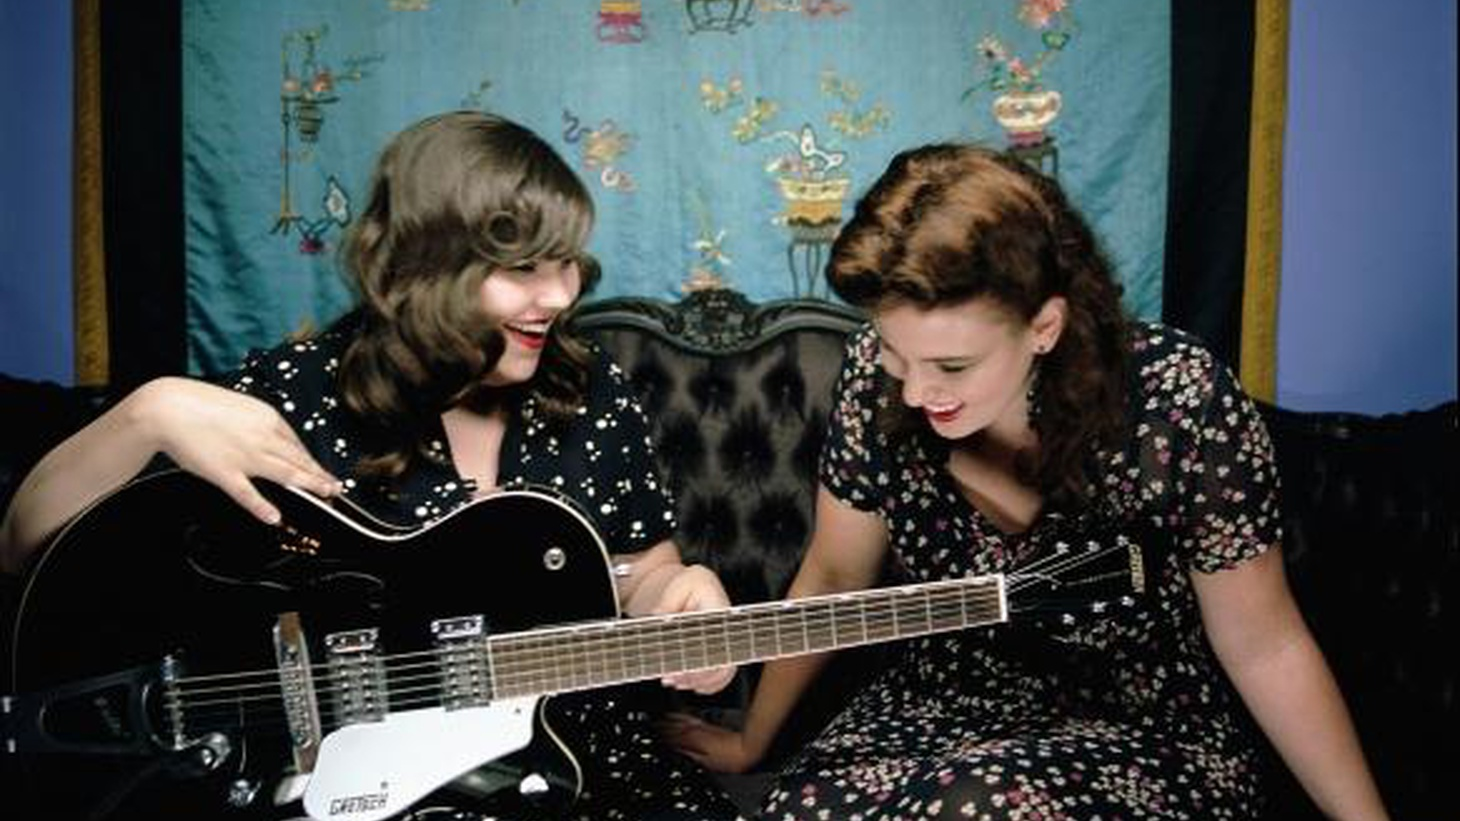 T Bone Burnett and Jack White have anointed the Secret Sisters as a duo to watch. They deliver gorgeous harmonies, whether singing renditions of songs made famous by Hank Williams and Buck Owens or their own original tunes. Hear it all on Morning Becomes Eclectic at 11:15am.